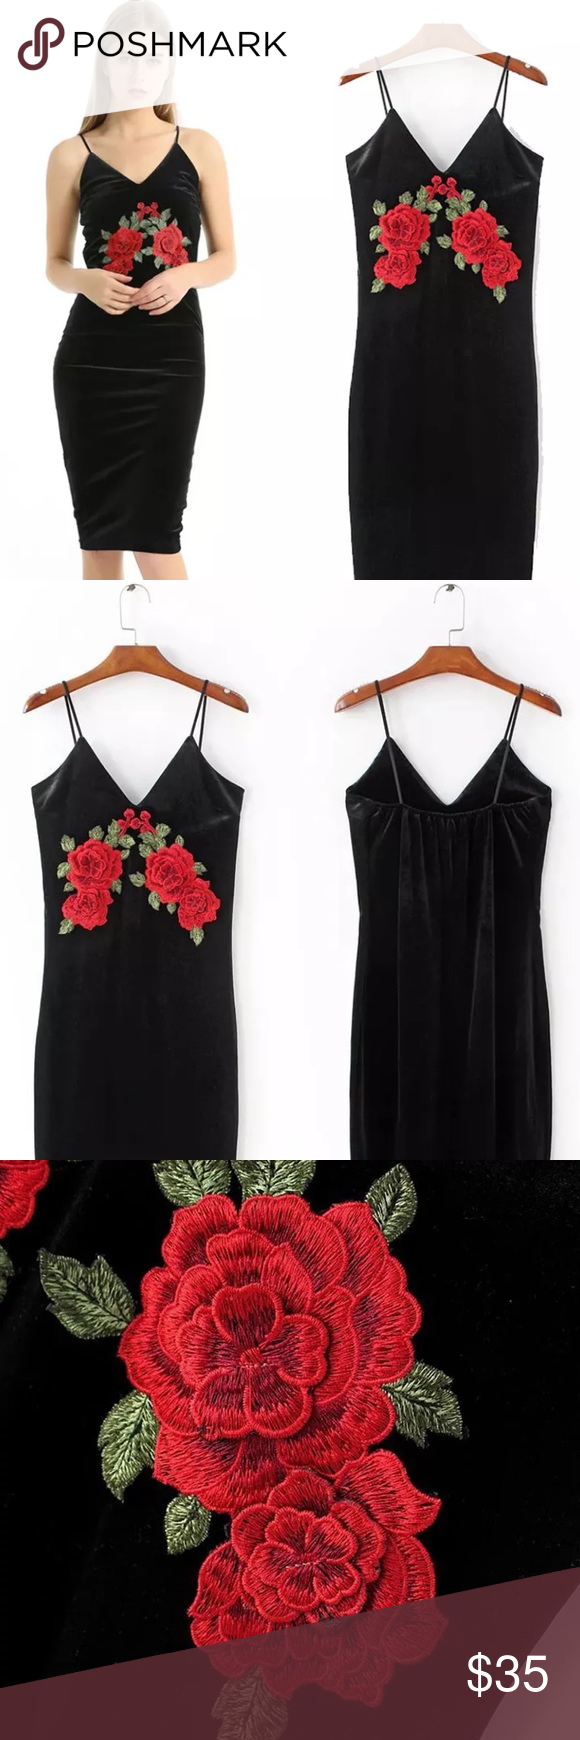 Black dress with roses rose detail and customer support